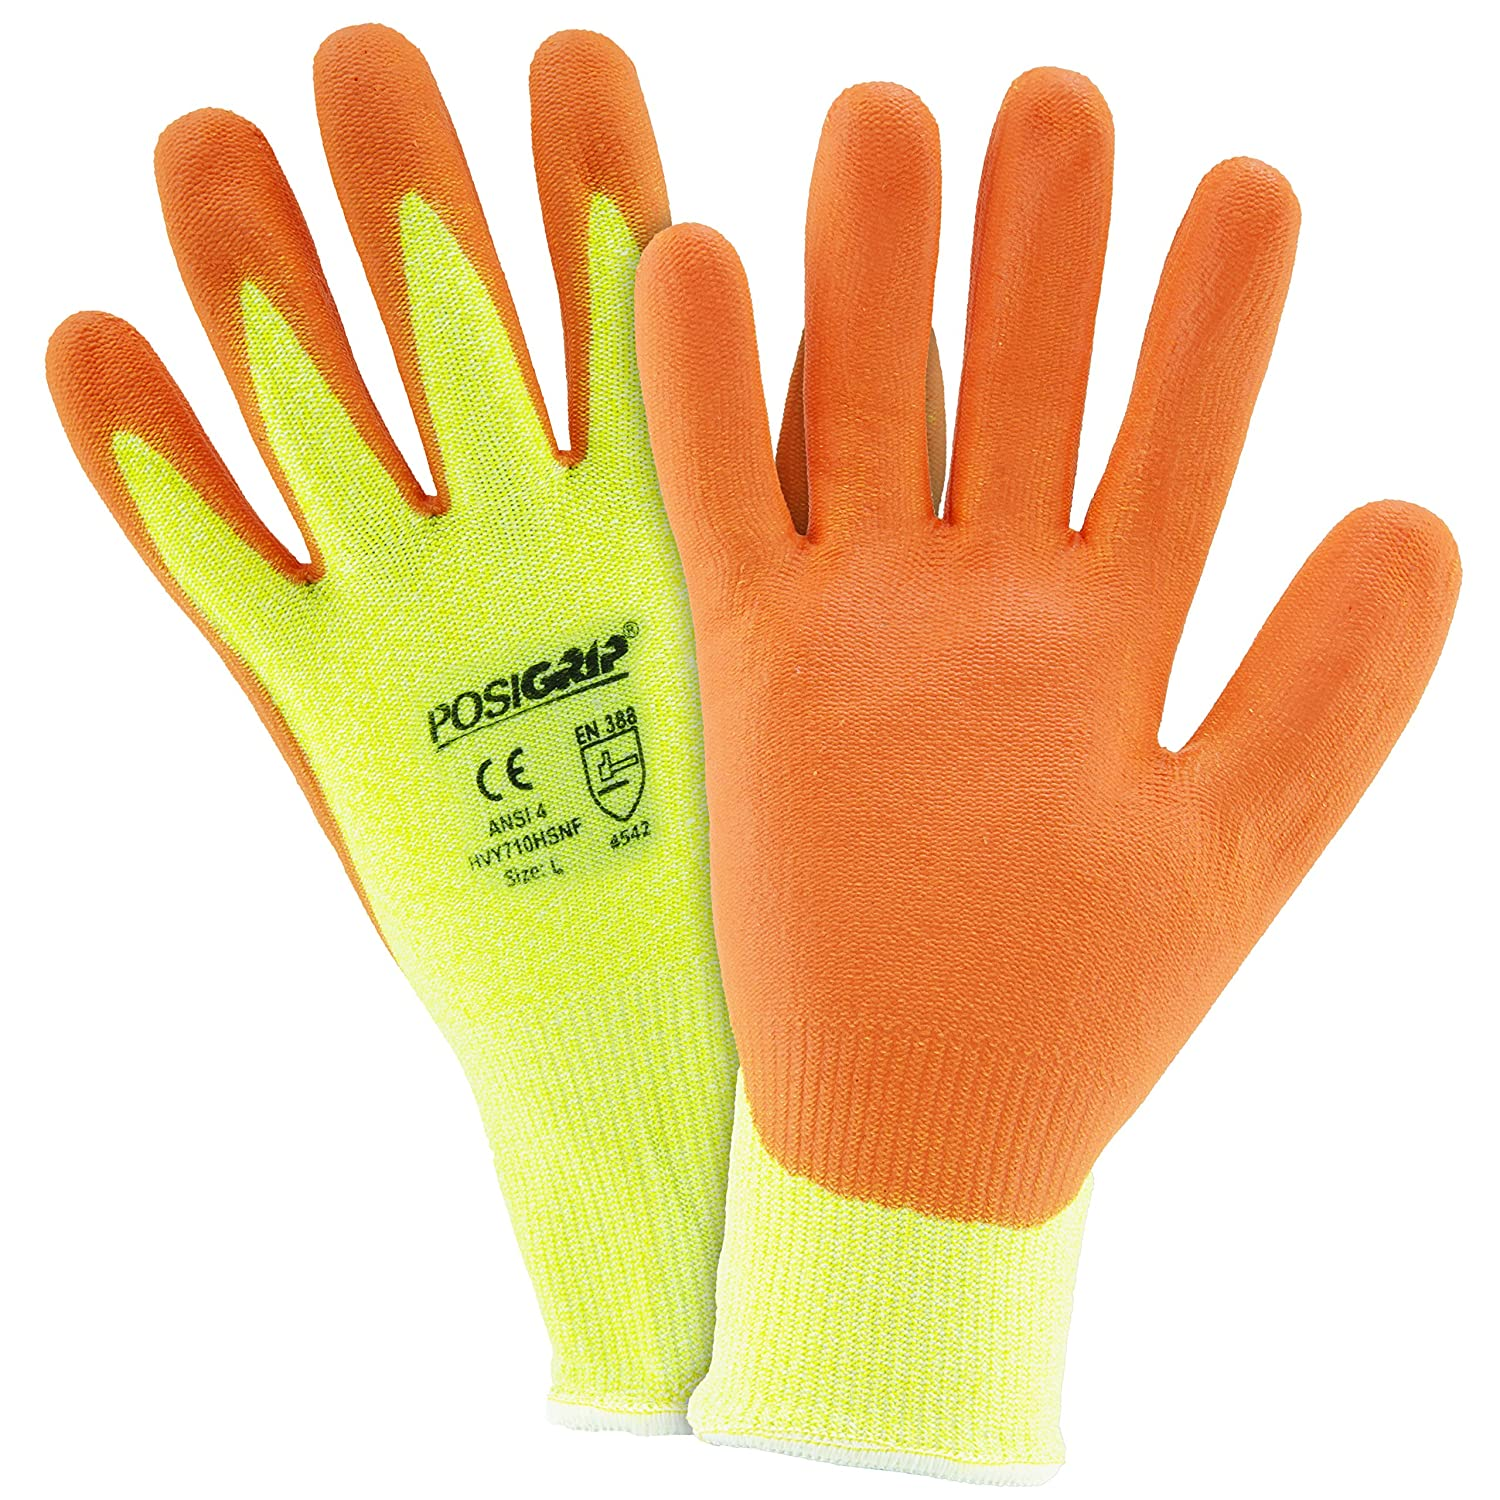 West Chester HVY710HSNF M HPPE Orange Foam Nitrile Palm Coated Gloves Medium Hi Vis Yellow Pack of 12